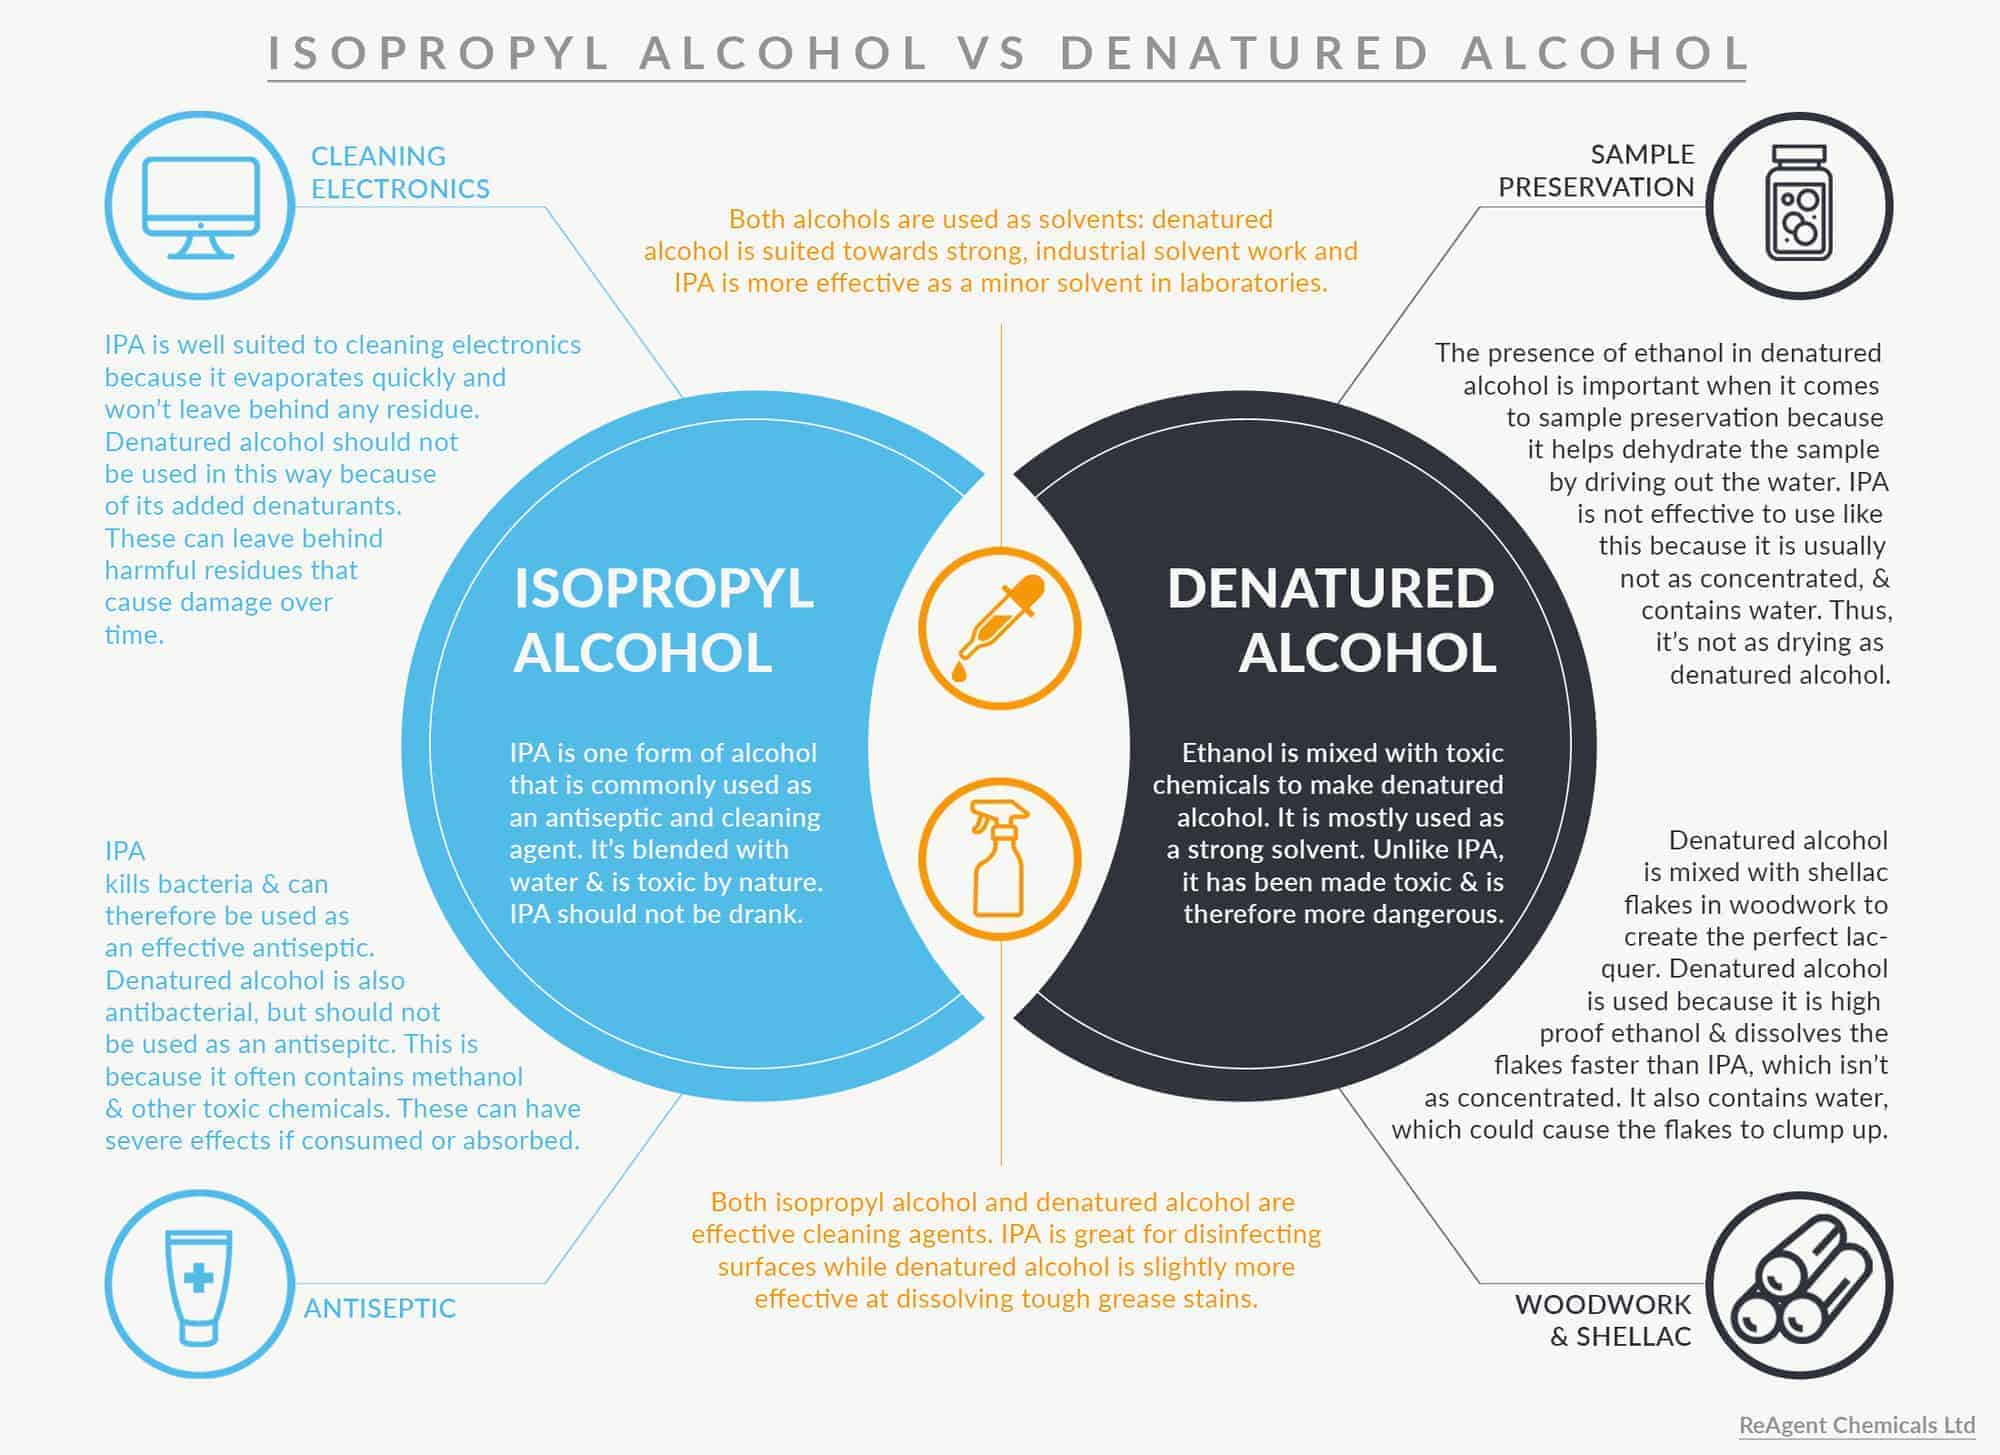 An infographic with a venn diagram showing the different & shared uses of isopropyl alcohol and denatured alcohol